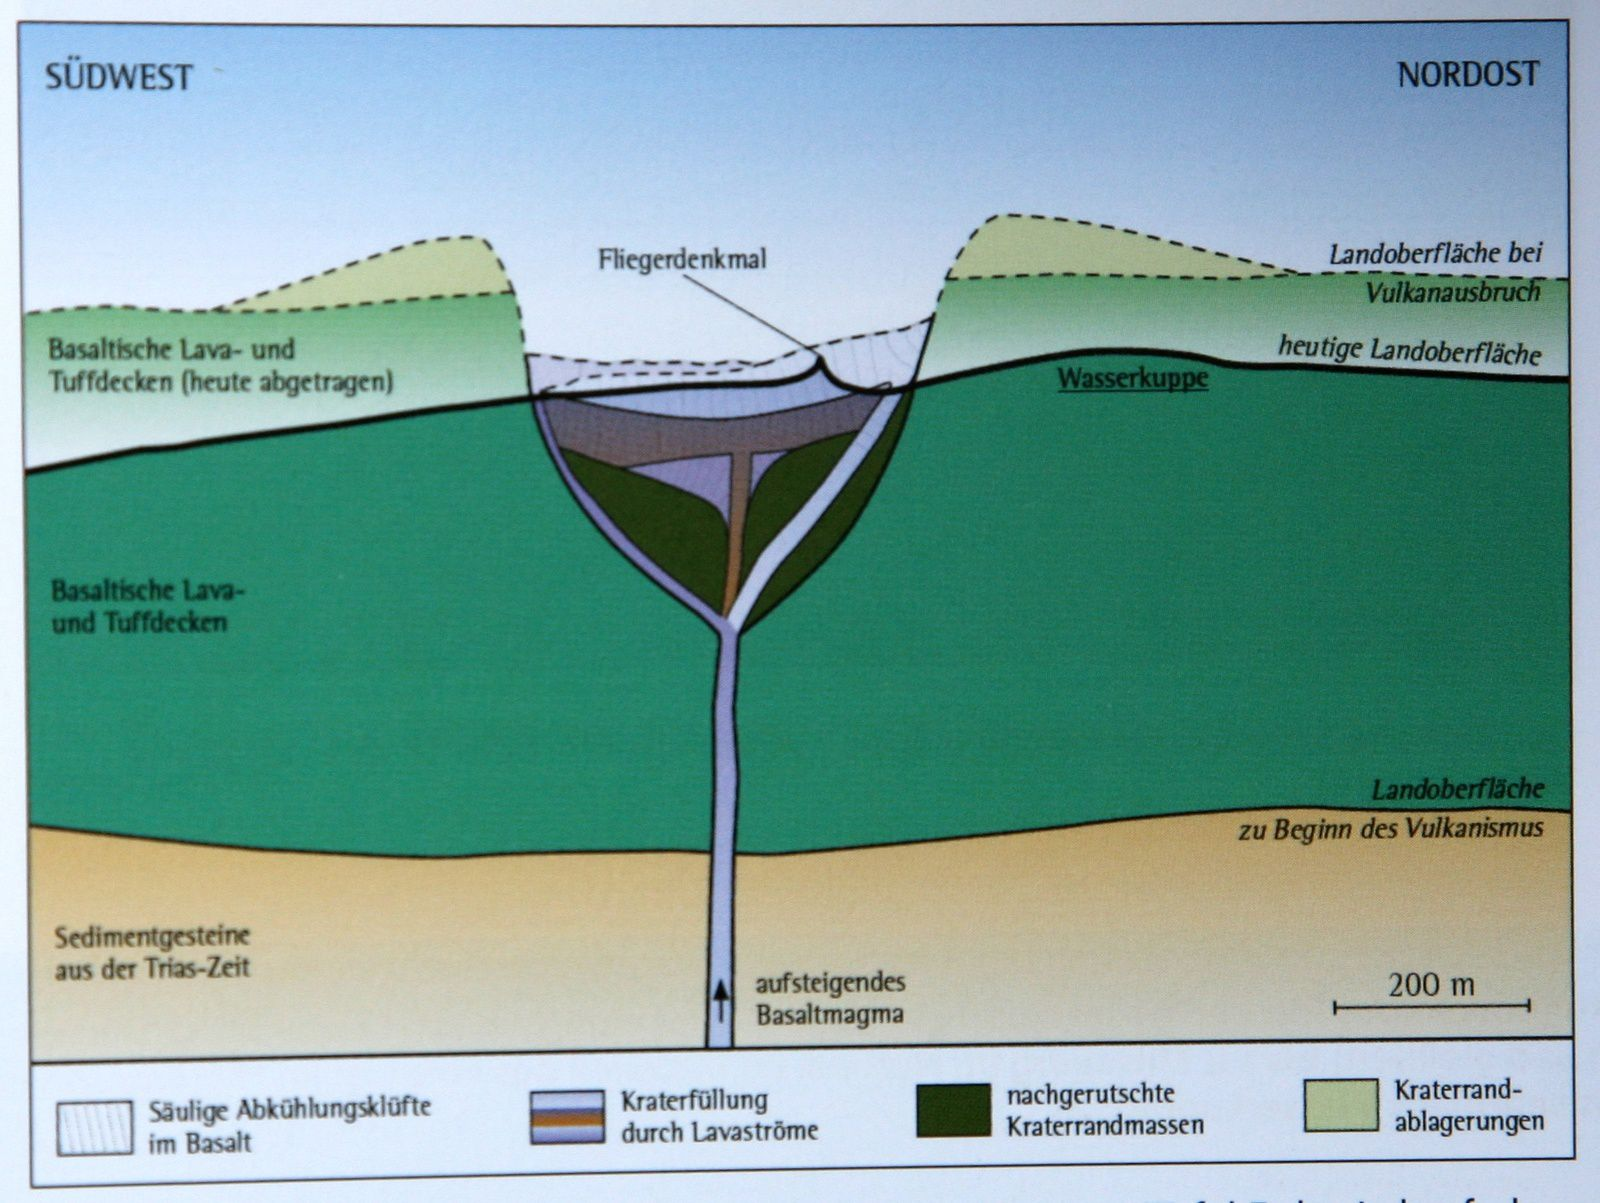 Geological situation of Fliegerdenkmal / Wasserkuppe - the big black line marks the current level - Doc. Die in Hessische Rhön / Geotope im offenen land of fermentation / Hlug.de